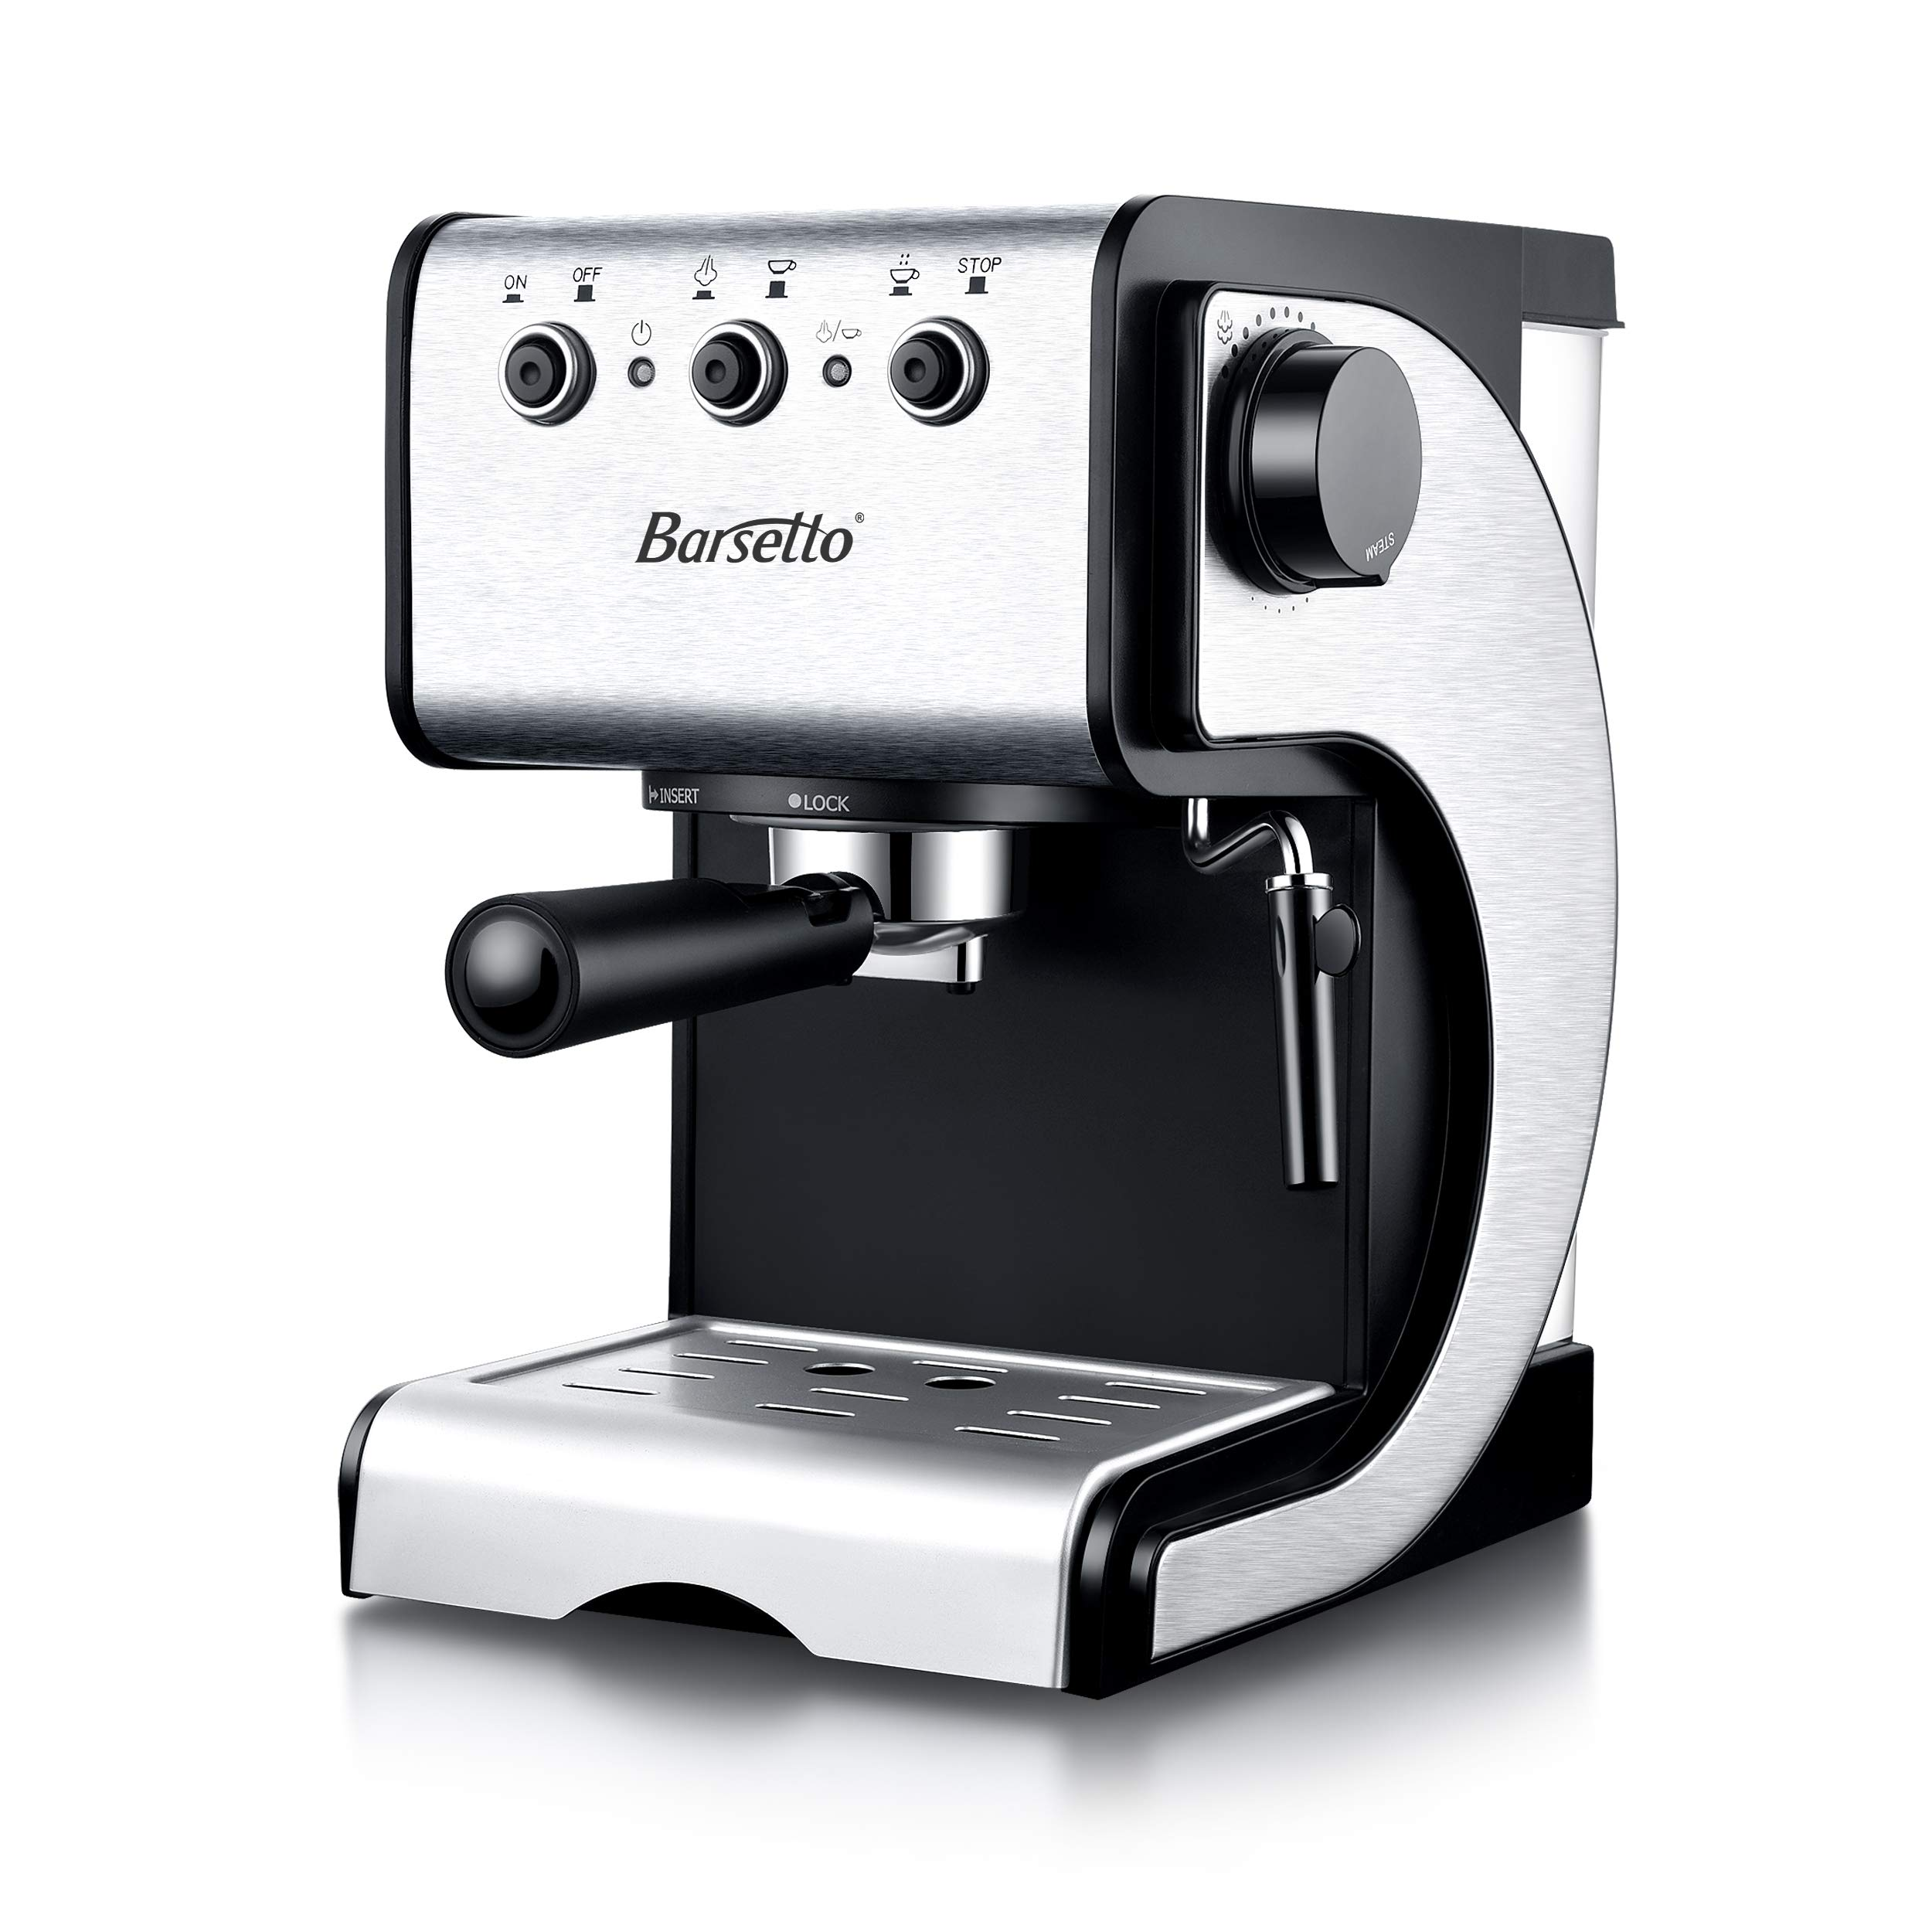 Espresso Machine Barsetto Coffee Machine 15 Bar Stainless Steel Coffee Brewer with Independent Milk Frother Wand for Cappuccino, Latte and Mocha (black)